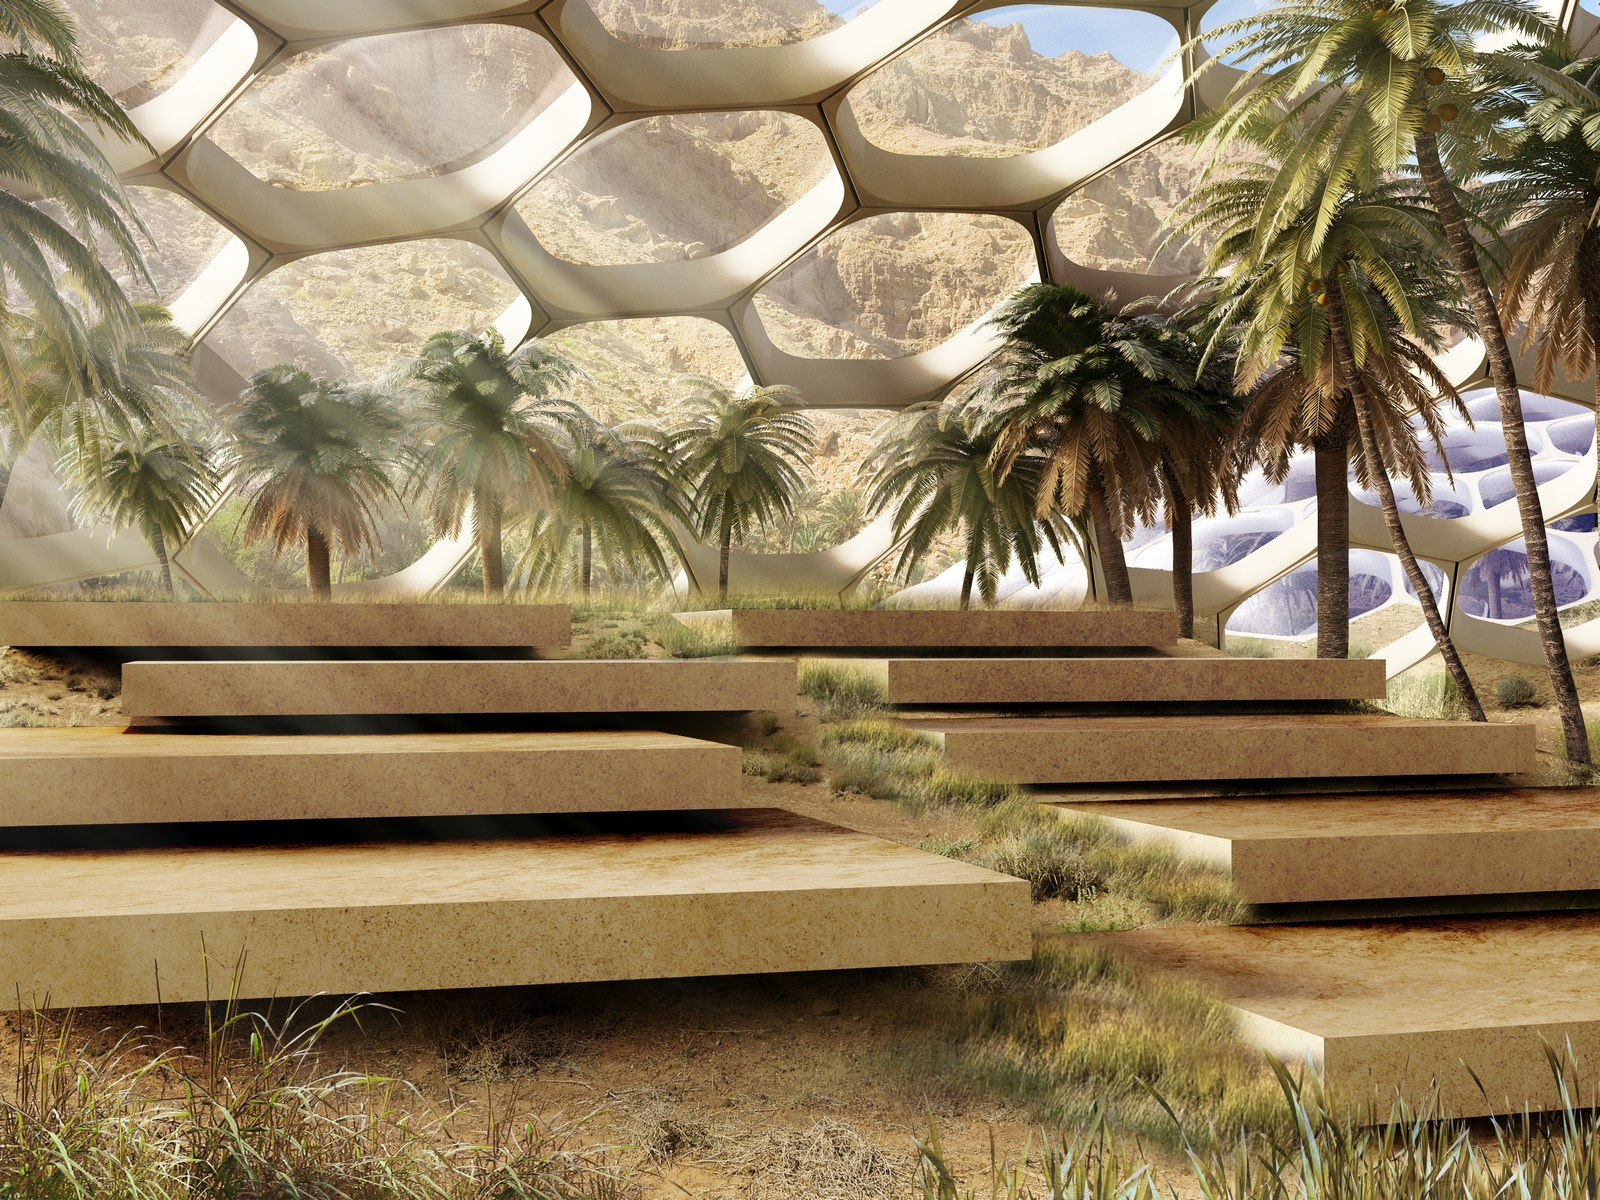 The Biodomes_Wildlife Conservation Centre_Amphitheatre_Baharash Architecture (Copy)